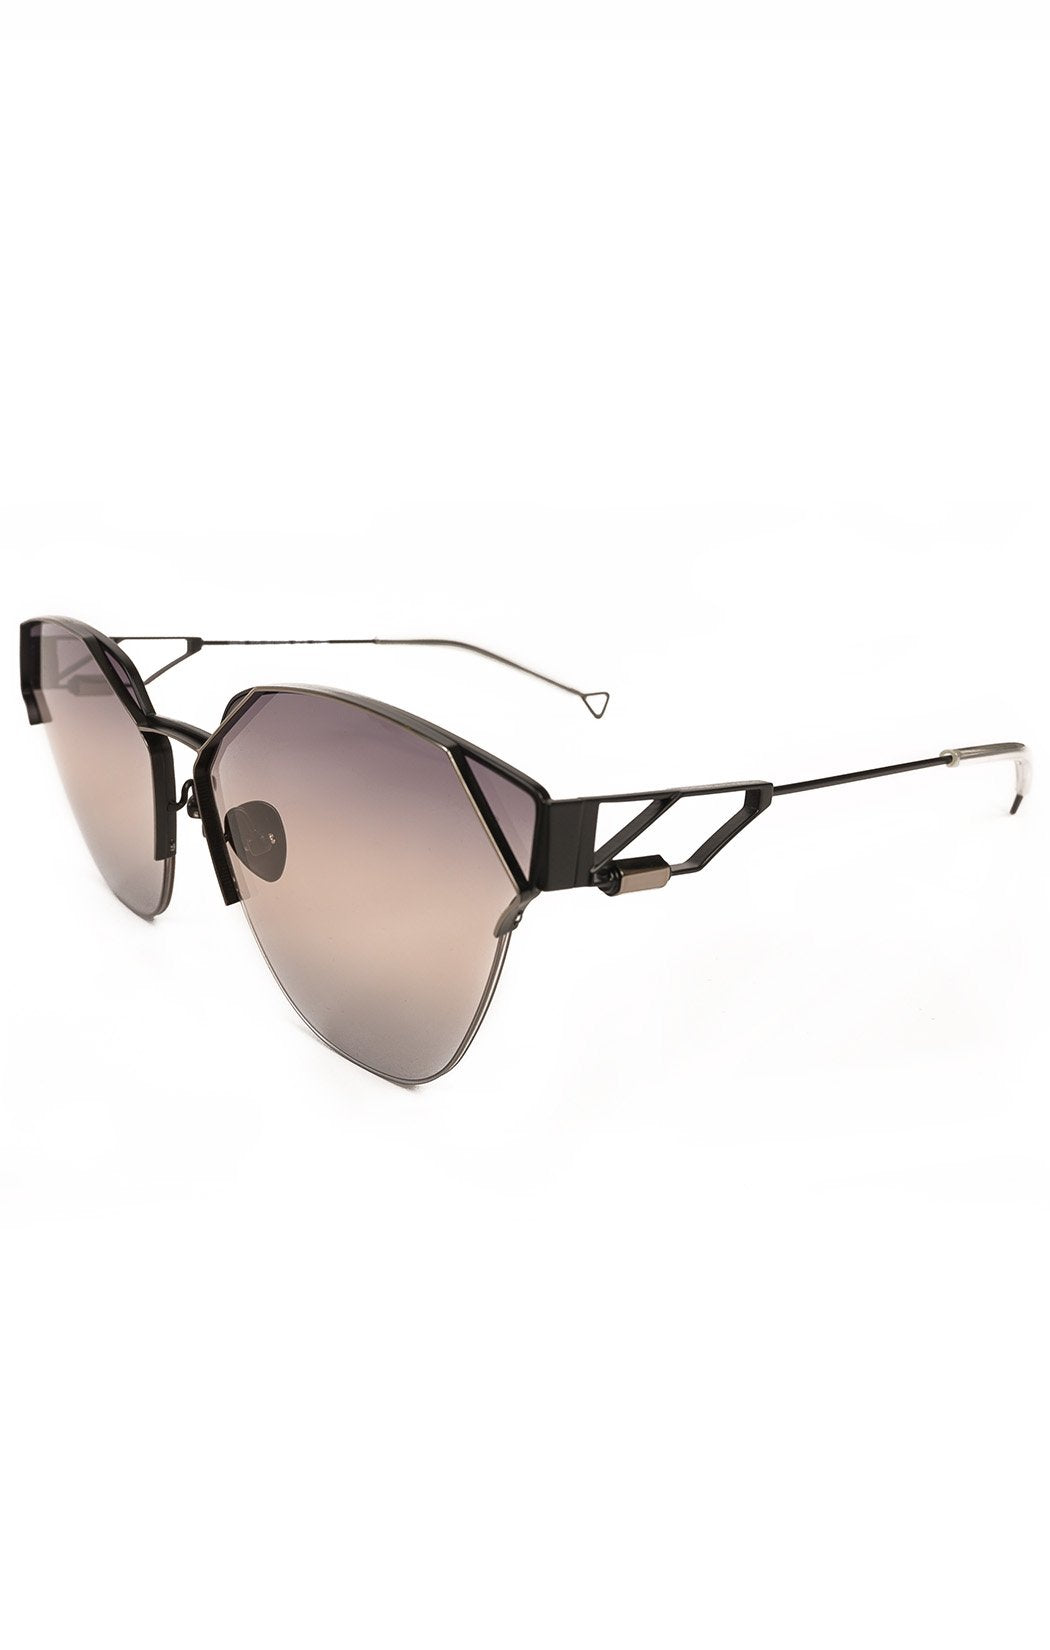 Side view of HAZE Sunglasses